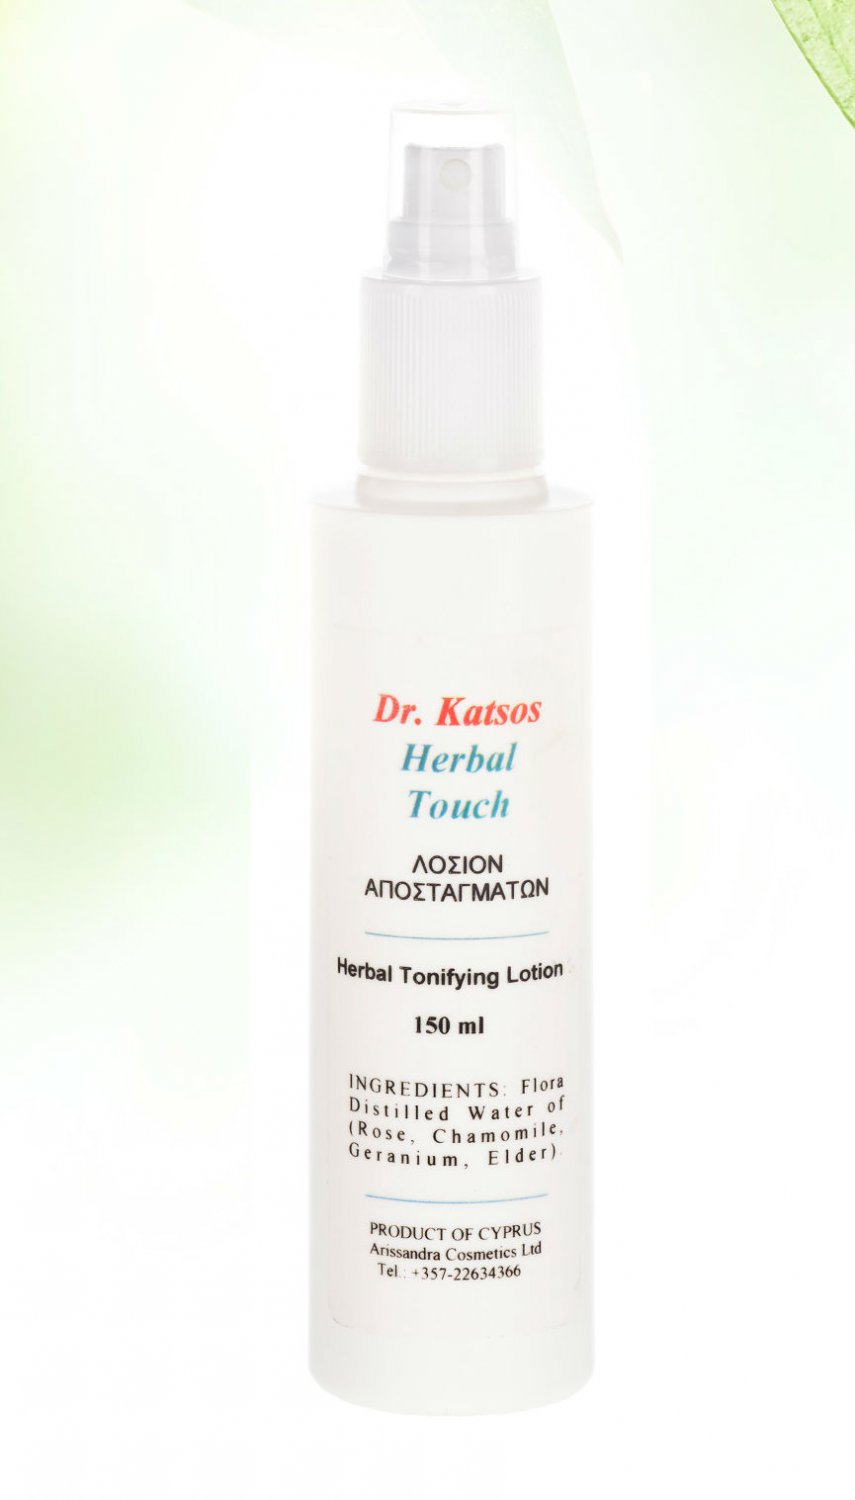 Herbal Tonifying Lotion - Tonifies the skin leaving it soft and smooth